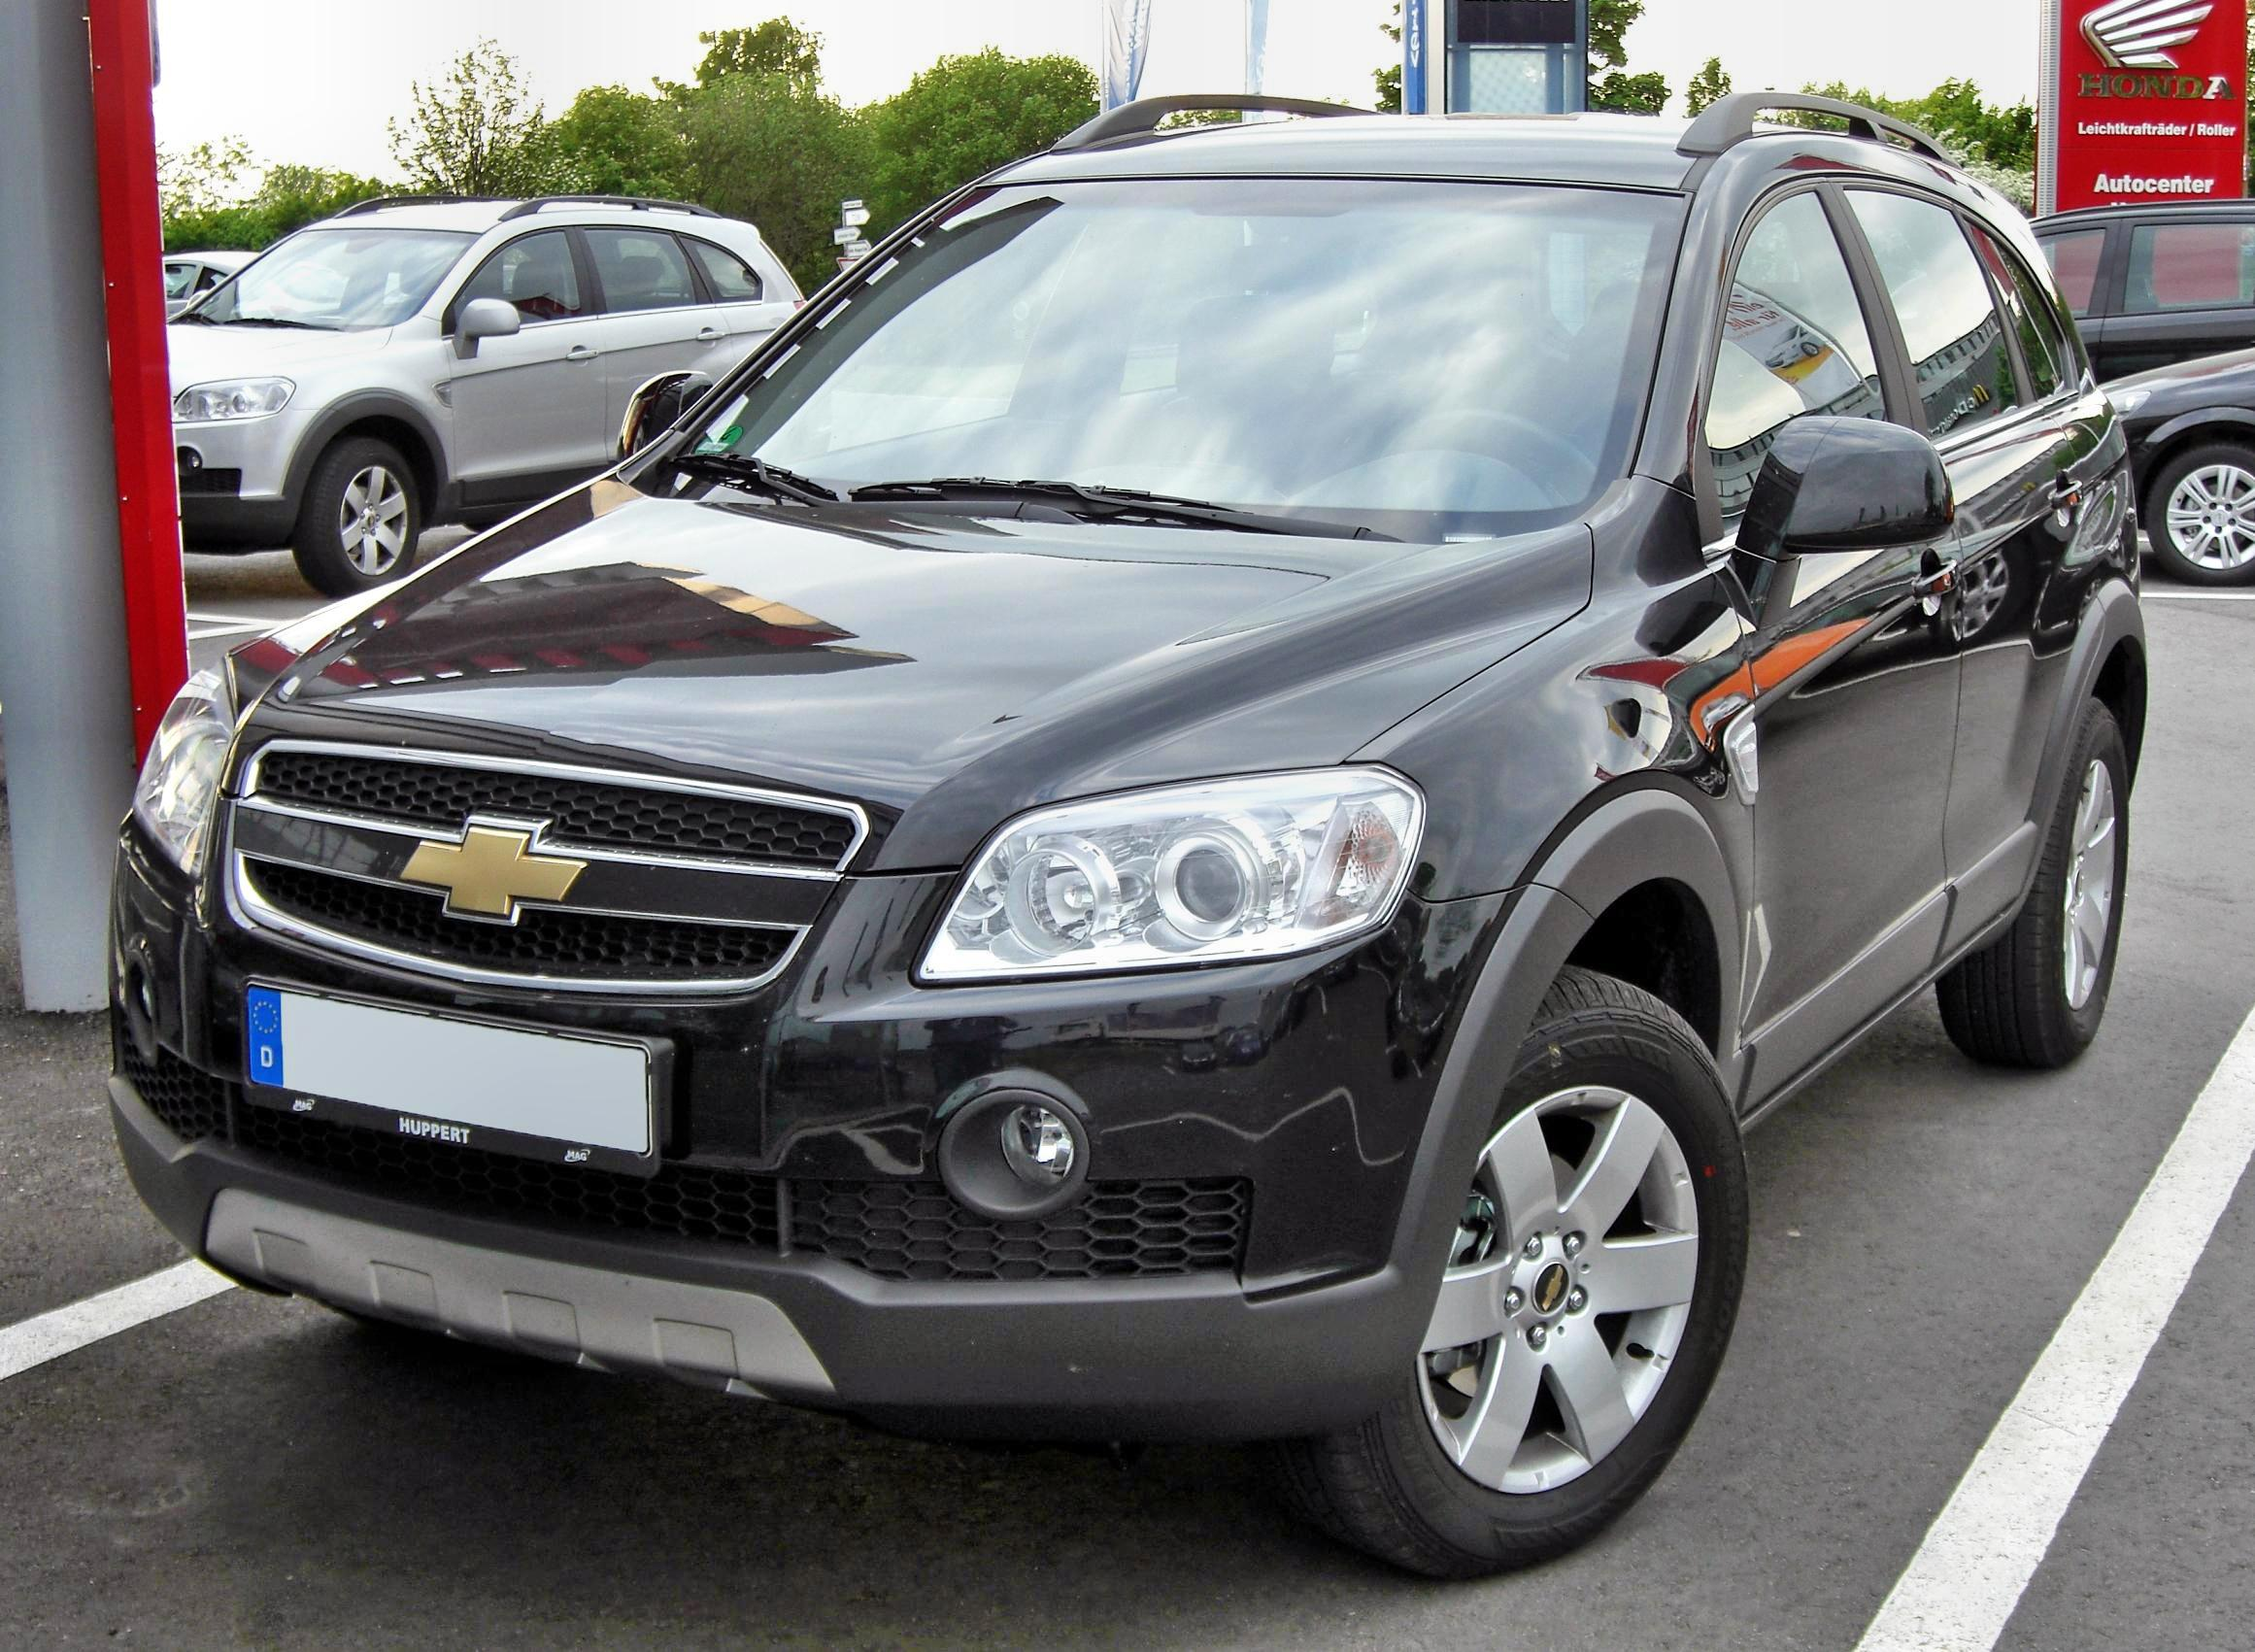 Selling Cars Chevrolet Captiva In Dallas Fort Worth